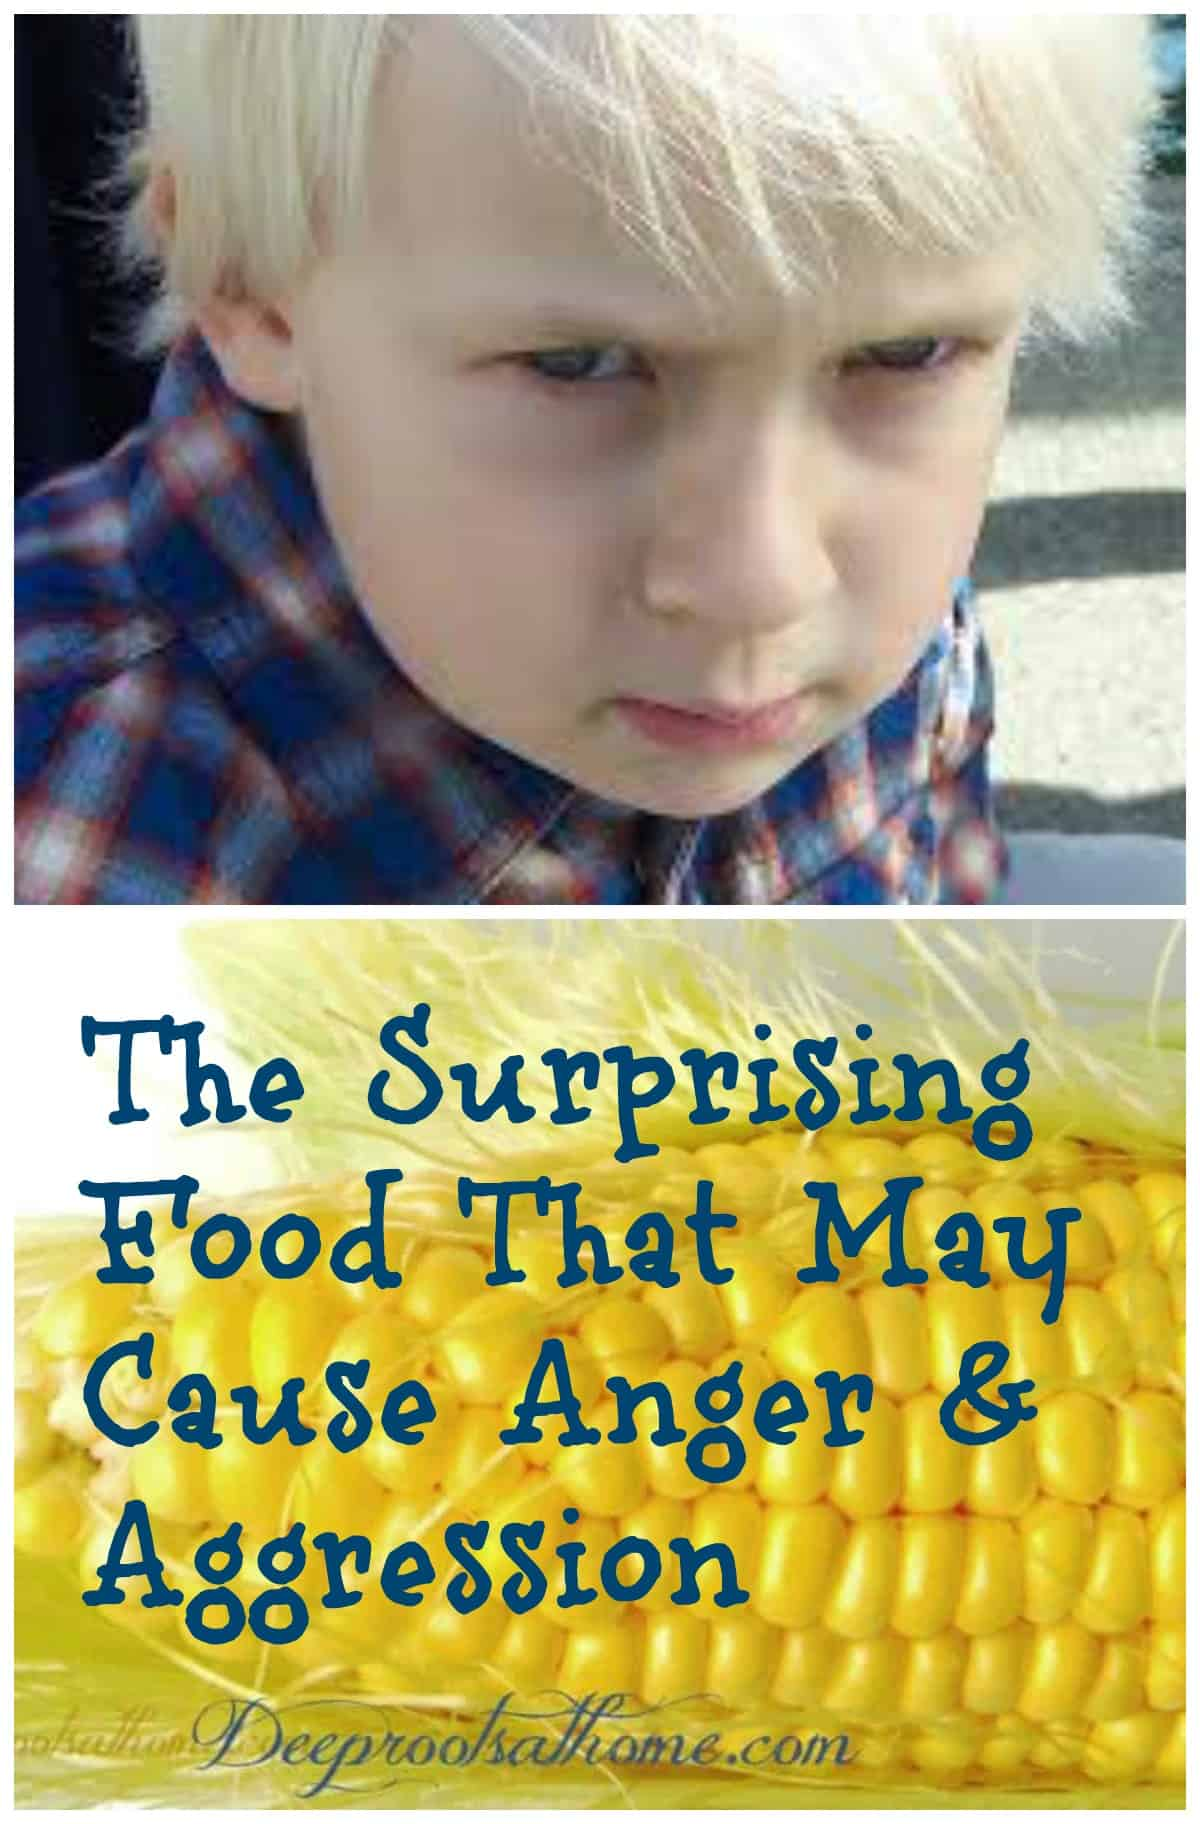 The Surprising Food That May Cause Anger & Aggression. Pinterest image of a very angry, defiant little boy